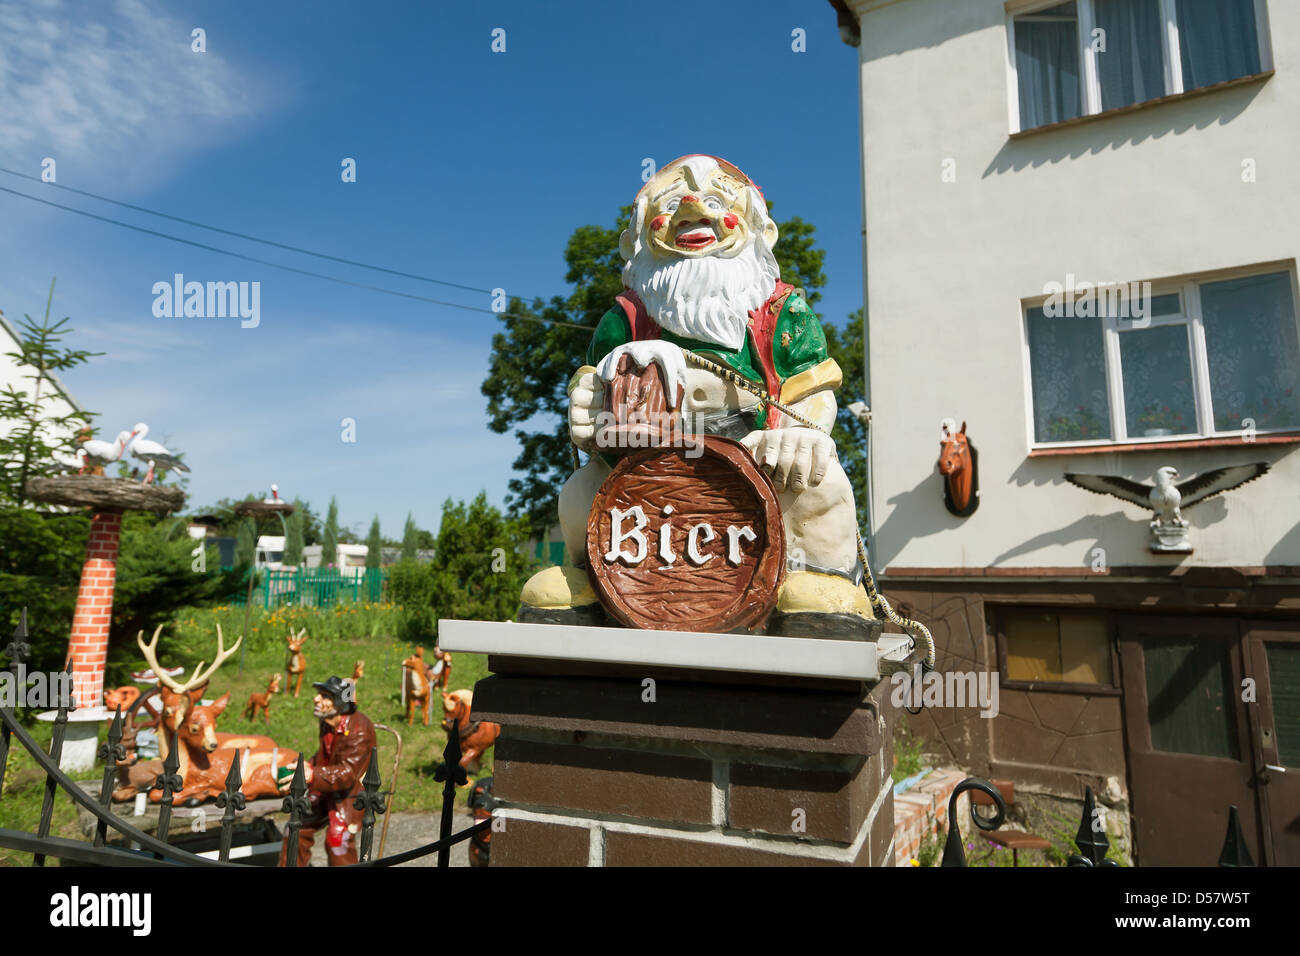 Wroclaw, Poland, German-sounding garden gnome in front of a house - Stock Image